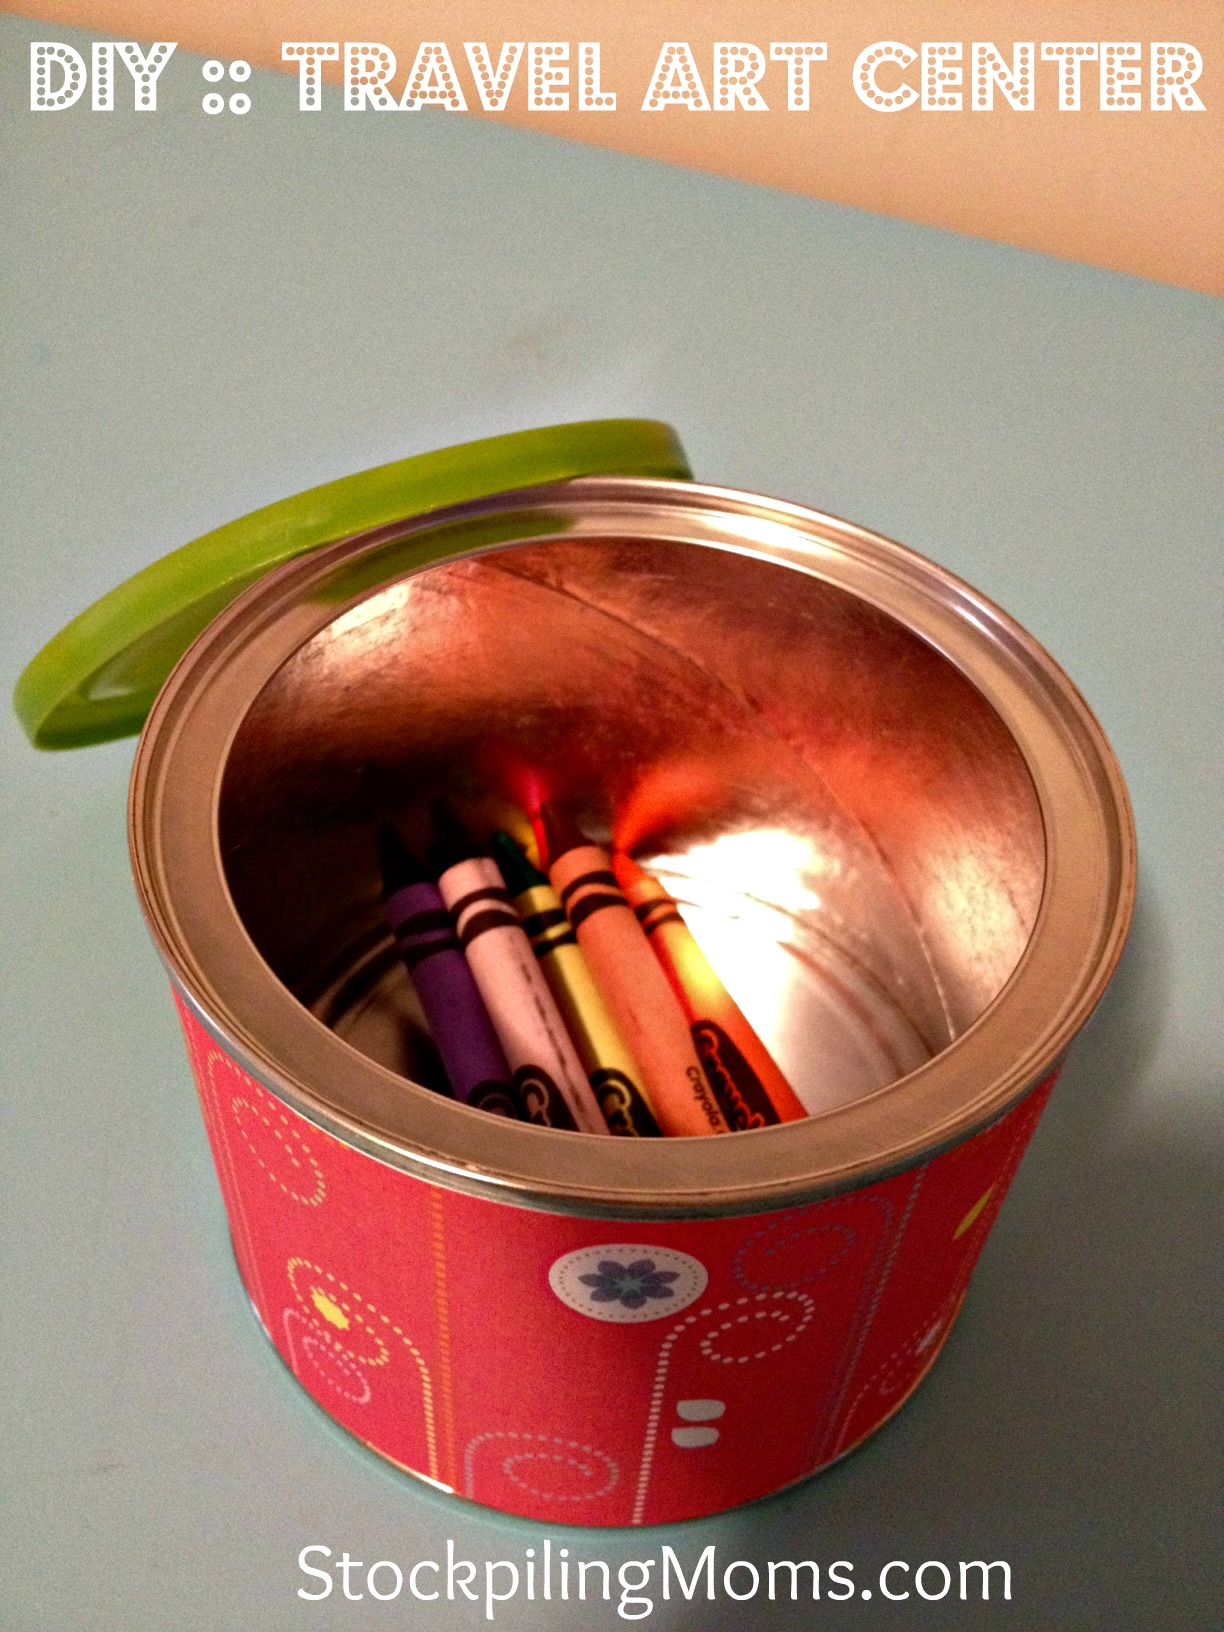 e love this DIY Travel Art Center for Vacation using a cookie sheet